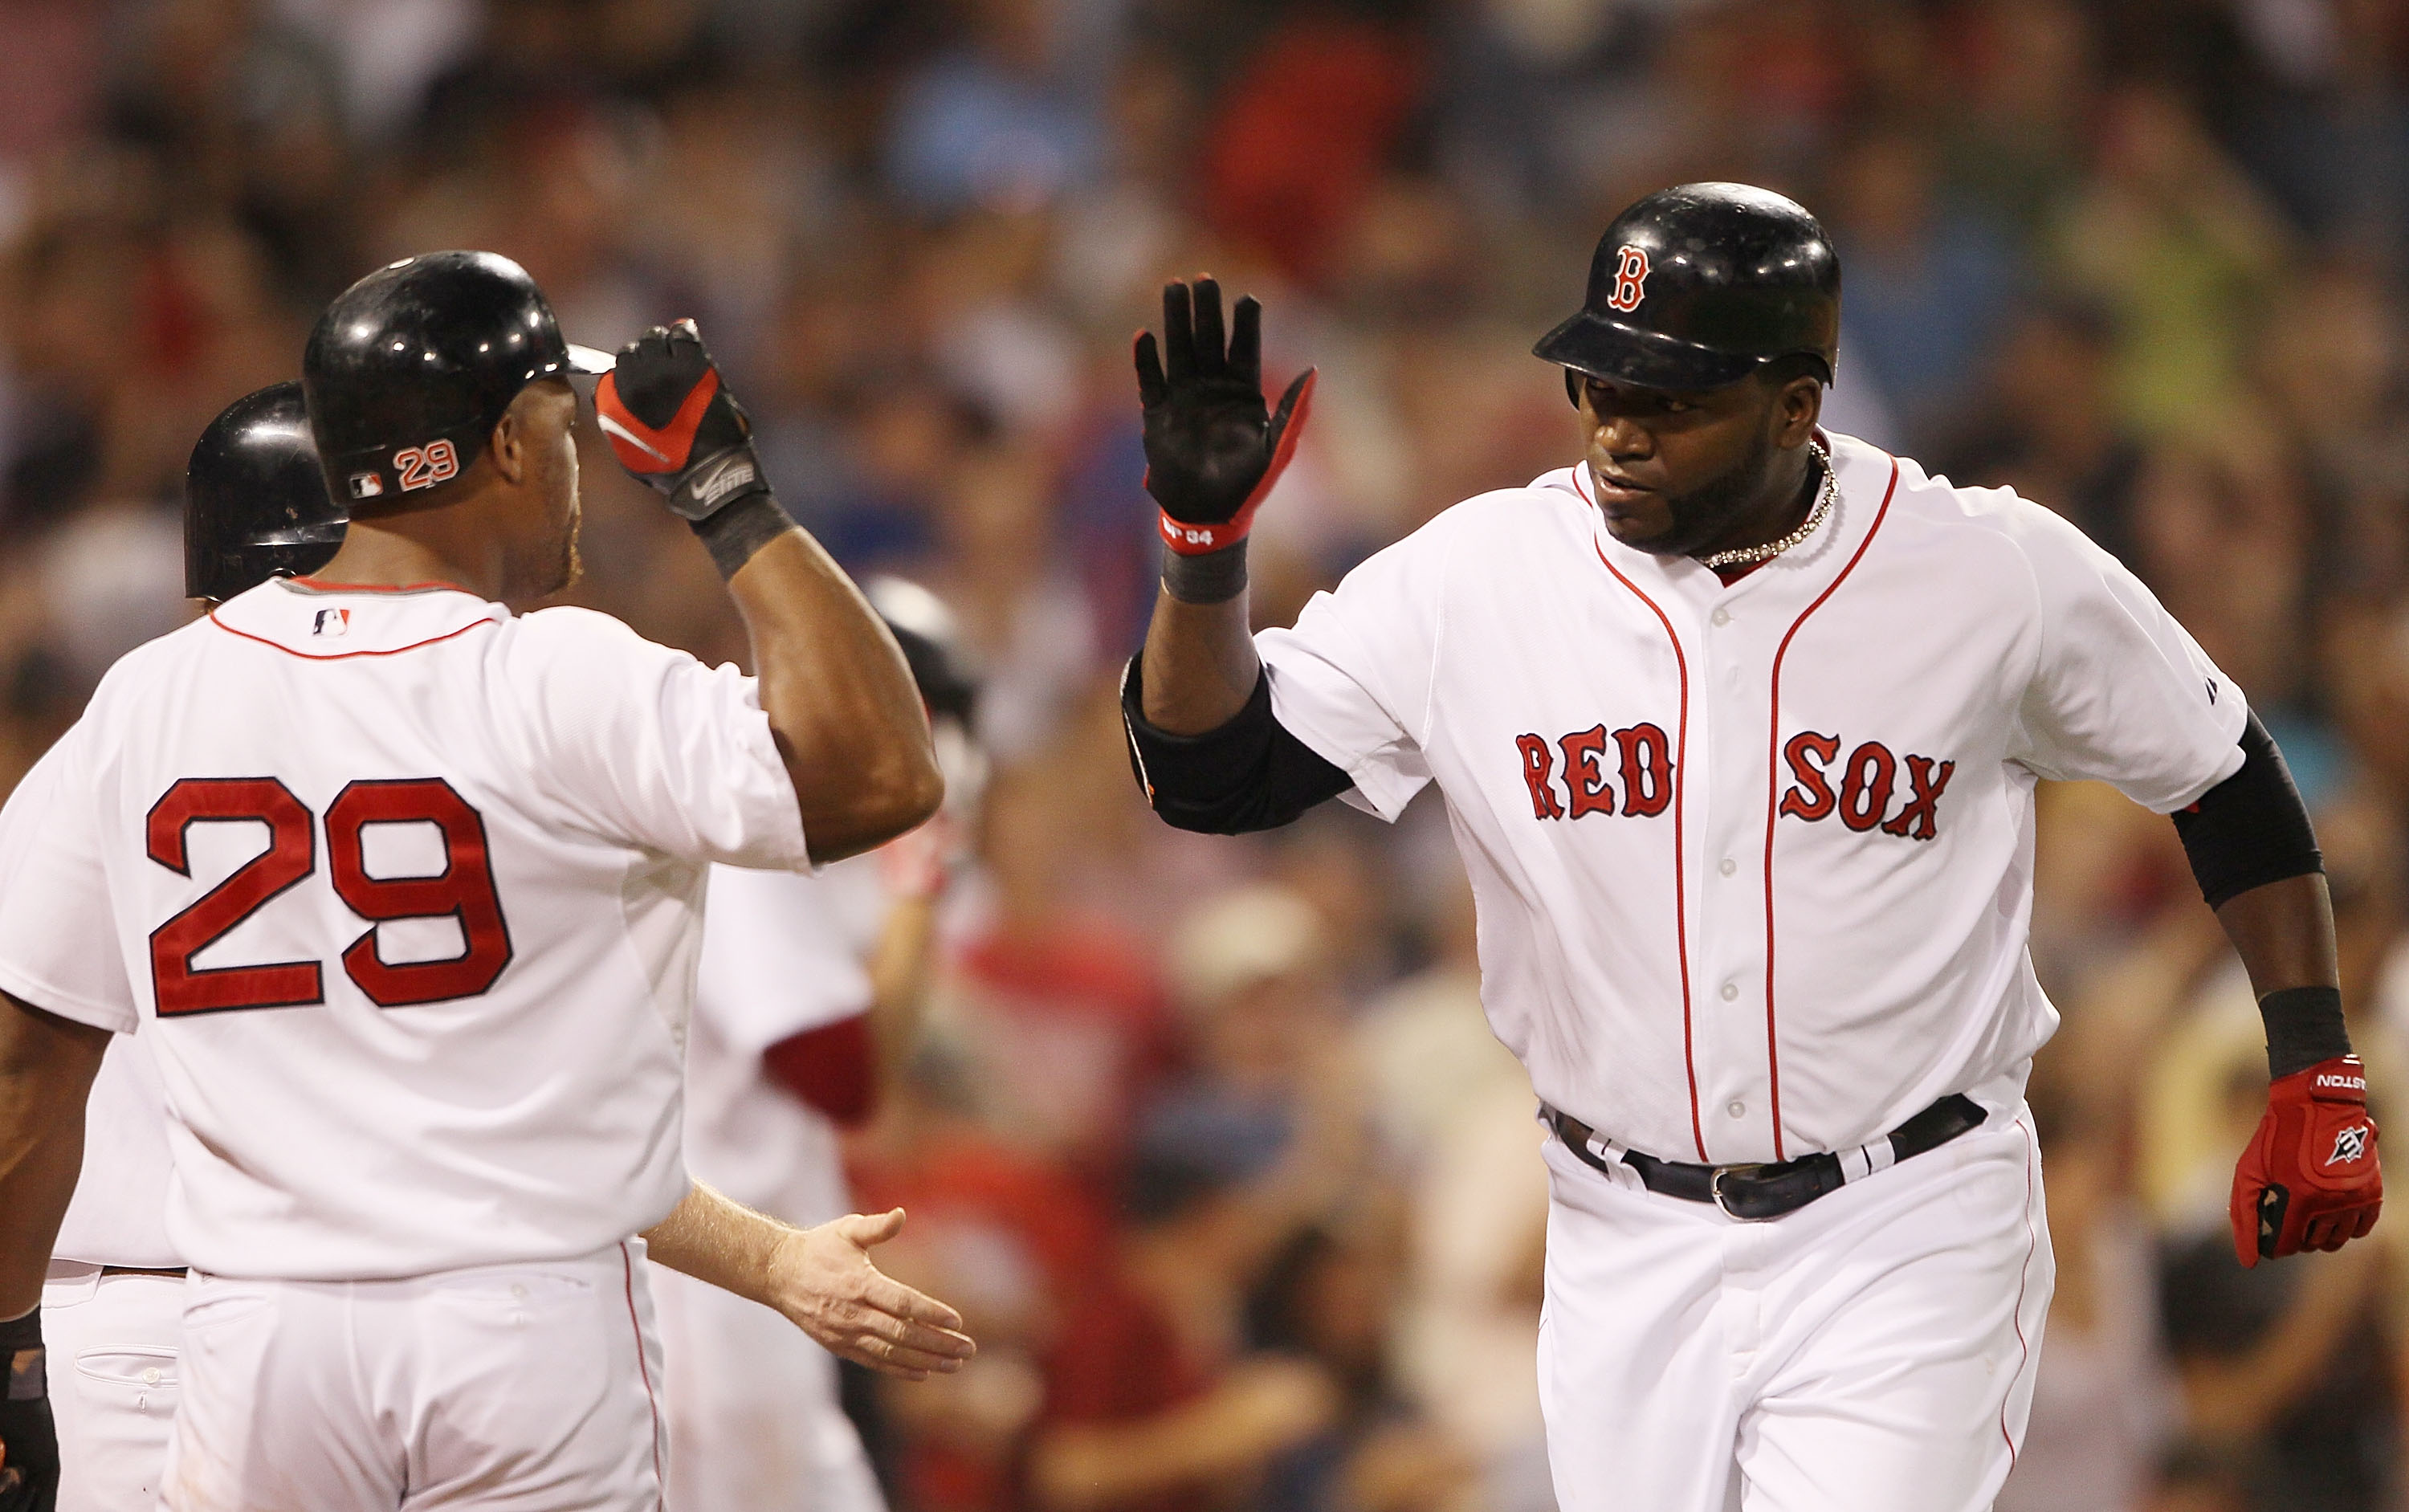 BOSTON - AUGUST 19:  David Ortiz #34  of the Boston Red Sox is congratulated by teammate Adrian Beltre #29 after Ortiz hit a solo home run in the fourth inning against of the Los Angeles Angels of Anaheim on August 19, 2010 at Fenway Park in Boston, Massa